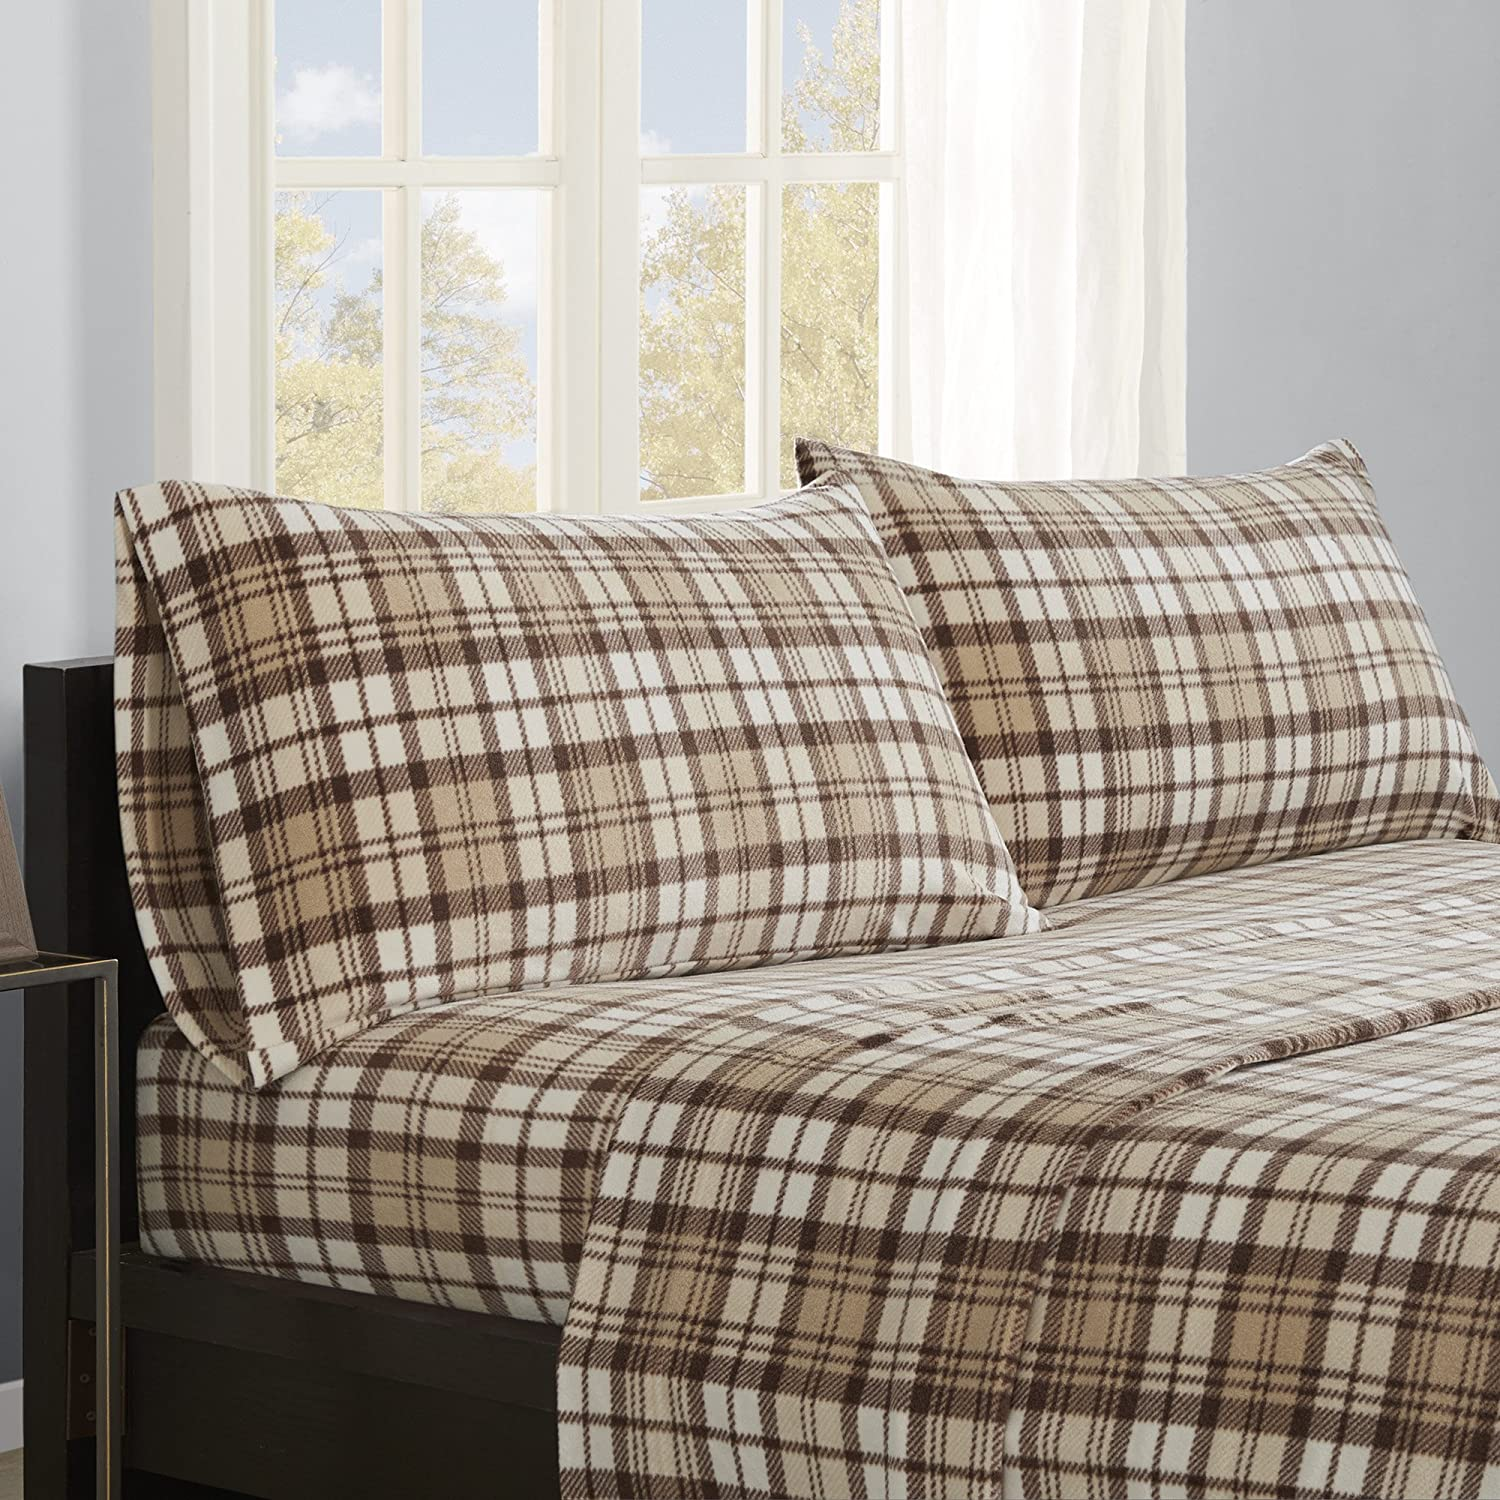 True North by Sleep Philosophy SHET20-540 Cozy Brushed Microfleece Ultra Soft Cold Weather Sheet Set Bedding, Queen, Tan Plaid